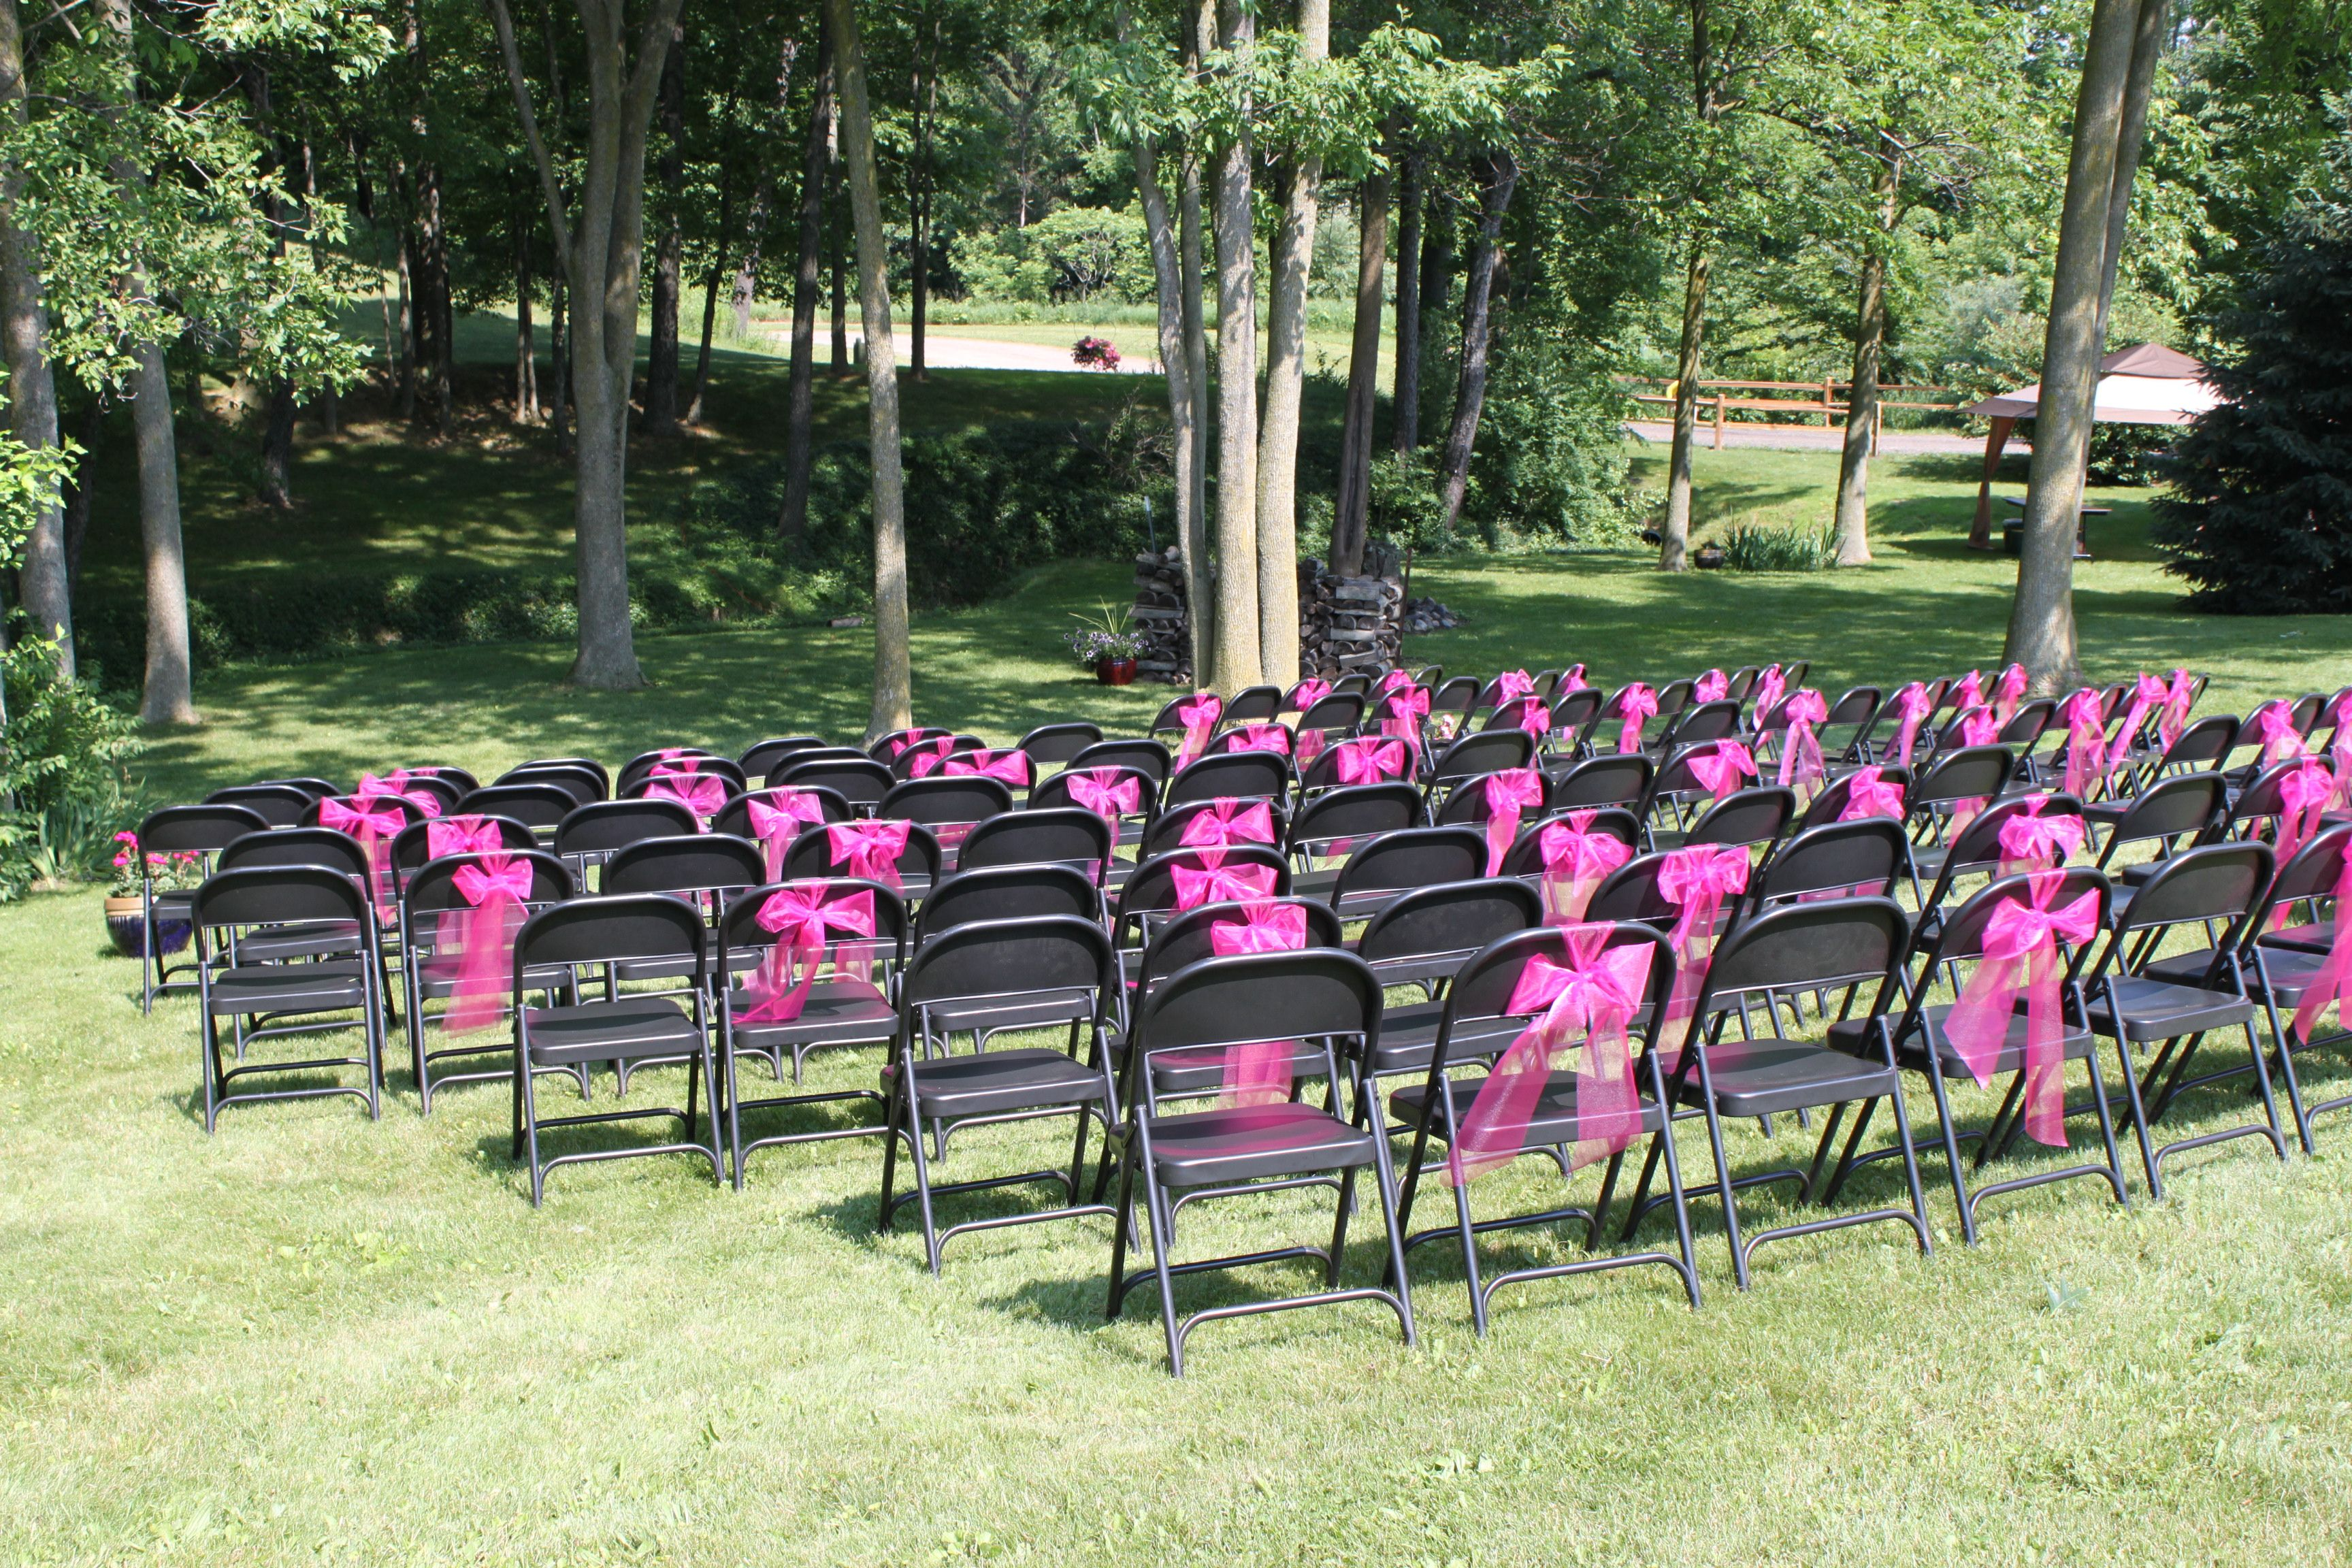 Ordinary Folding Chairs Dressed Up With Hot Pink Tulle Bows For An